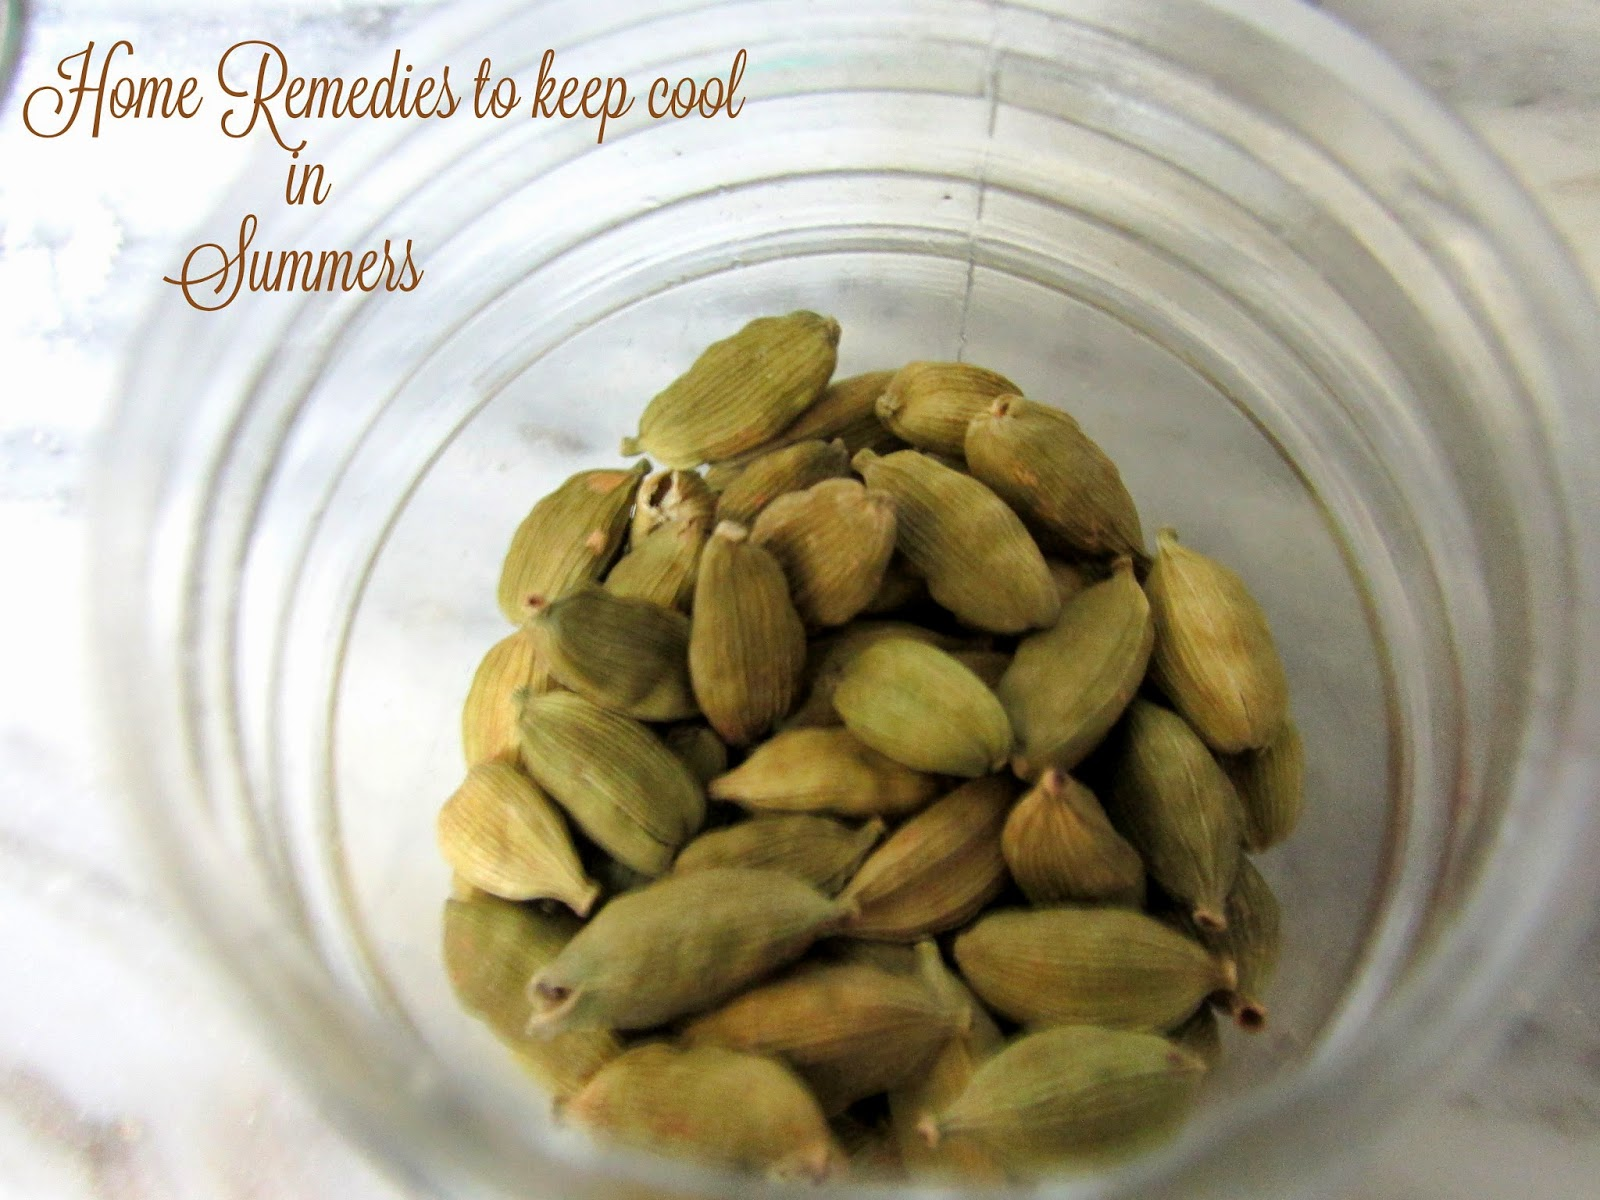 Home remedies for summer, how to keep cool , how to keep cool in summers, how to keep body cool, home remedies for summer heat, home mange water for summers, home made water to keep cool, cool water, cool water for summers, flavoured water, flavoured water for summers, infused water, infusers water for summers, home remedies for heat, hot weather remedies, water to best the heat, home remedies to best the heat, how to make infused water , how to make infused water at home, infused water, cardamom , cardamom water, cardamom uses, cardamom water uses, how to use cardamom, advantages of cardamom,